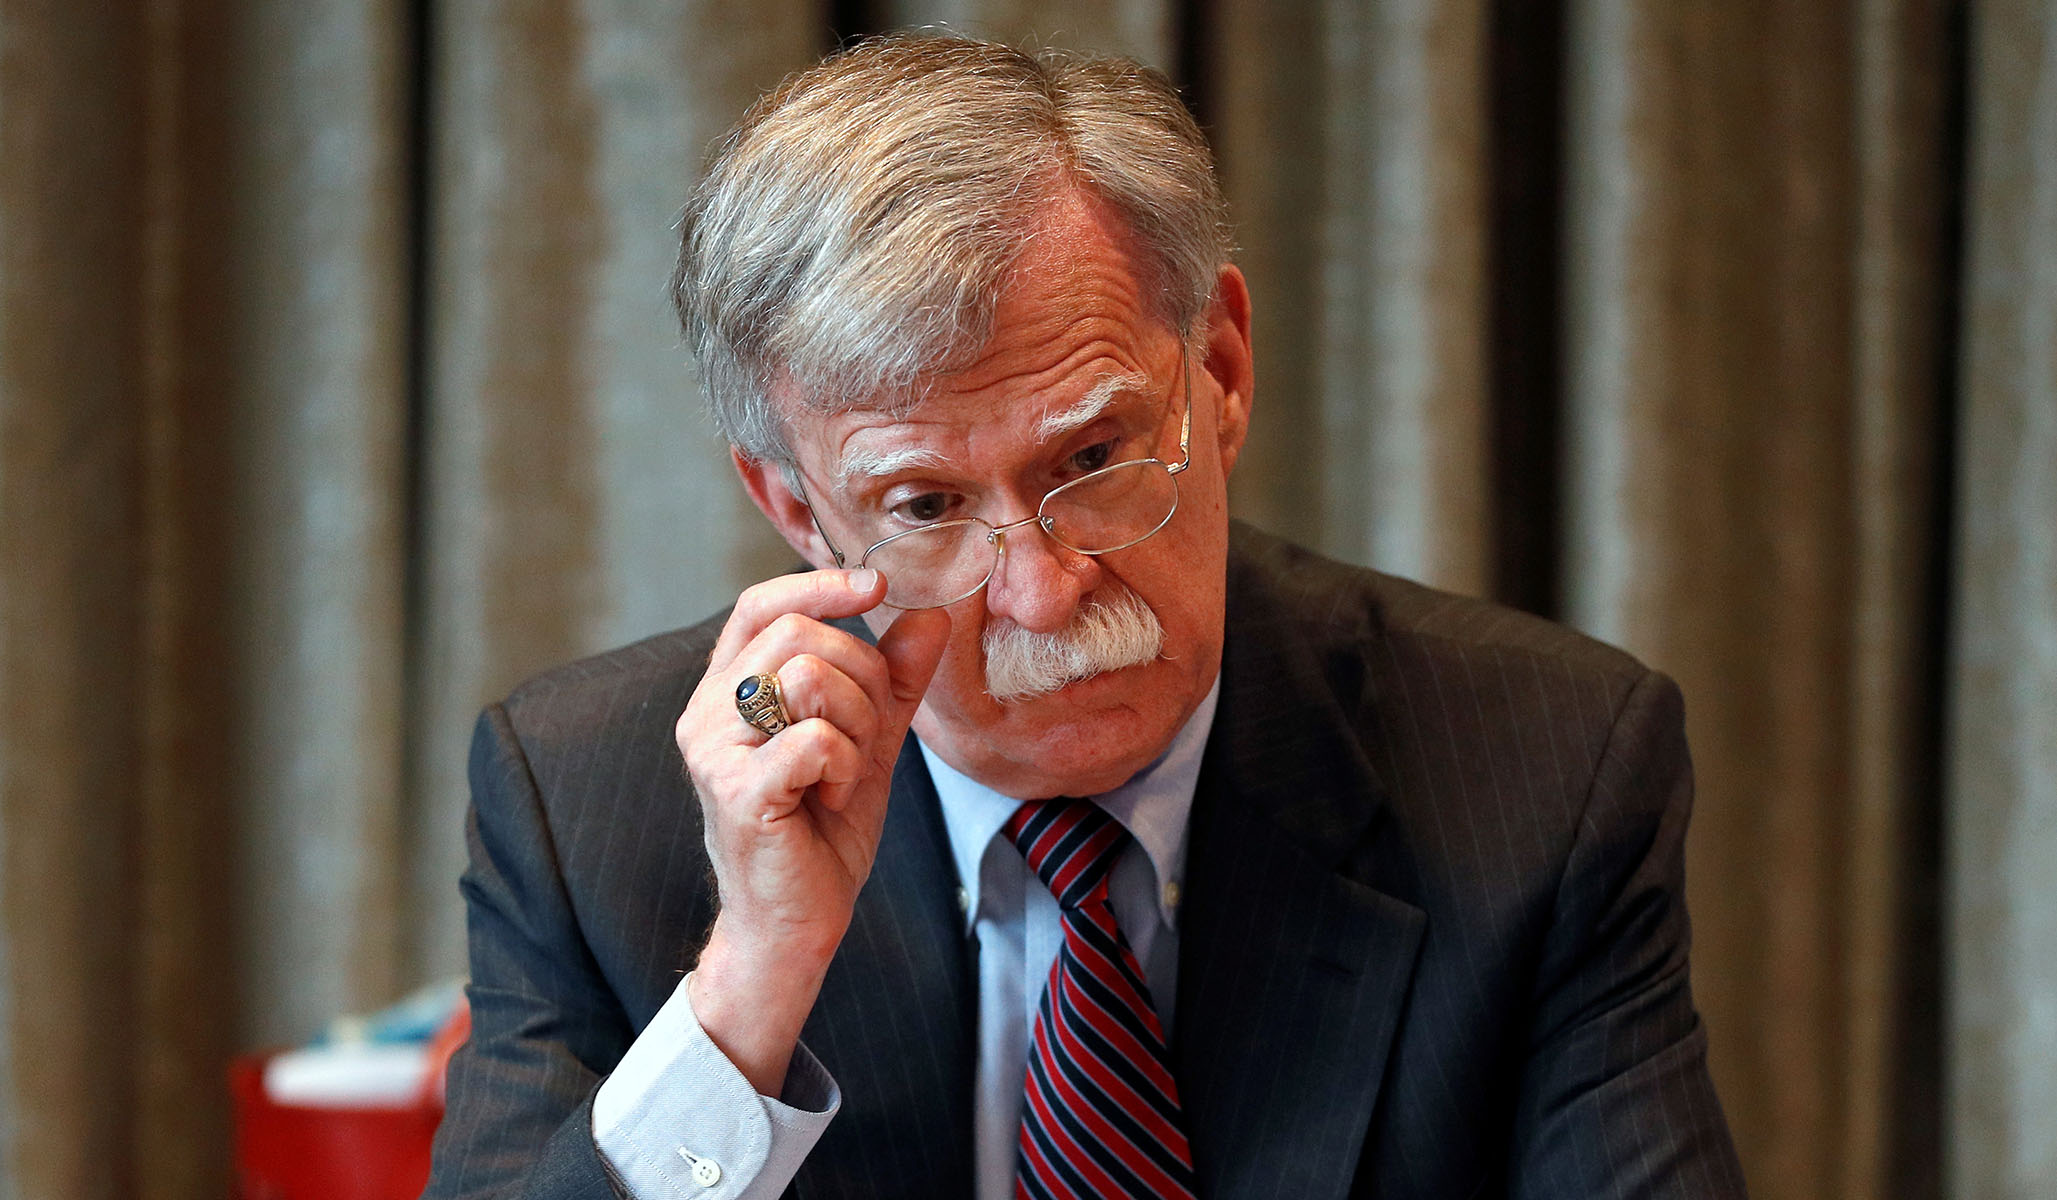 Bolton Denies Leaking Quid Pro Quo Book Excerpt To NYT: 'There Was Absolutely No Coordination'